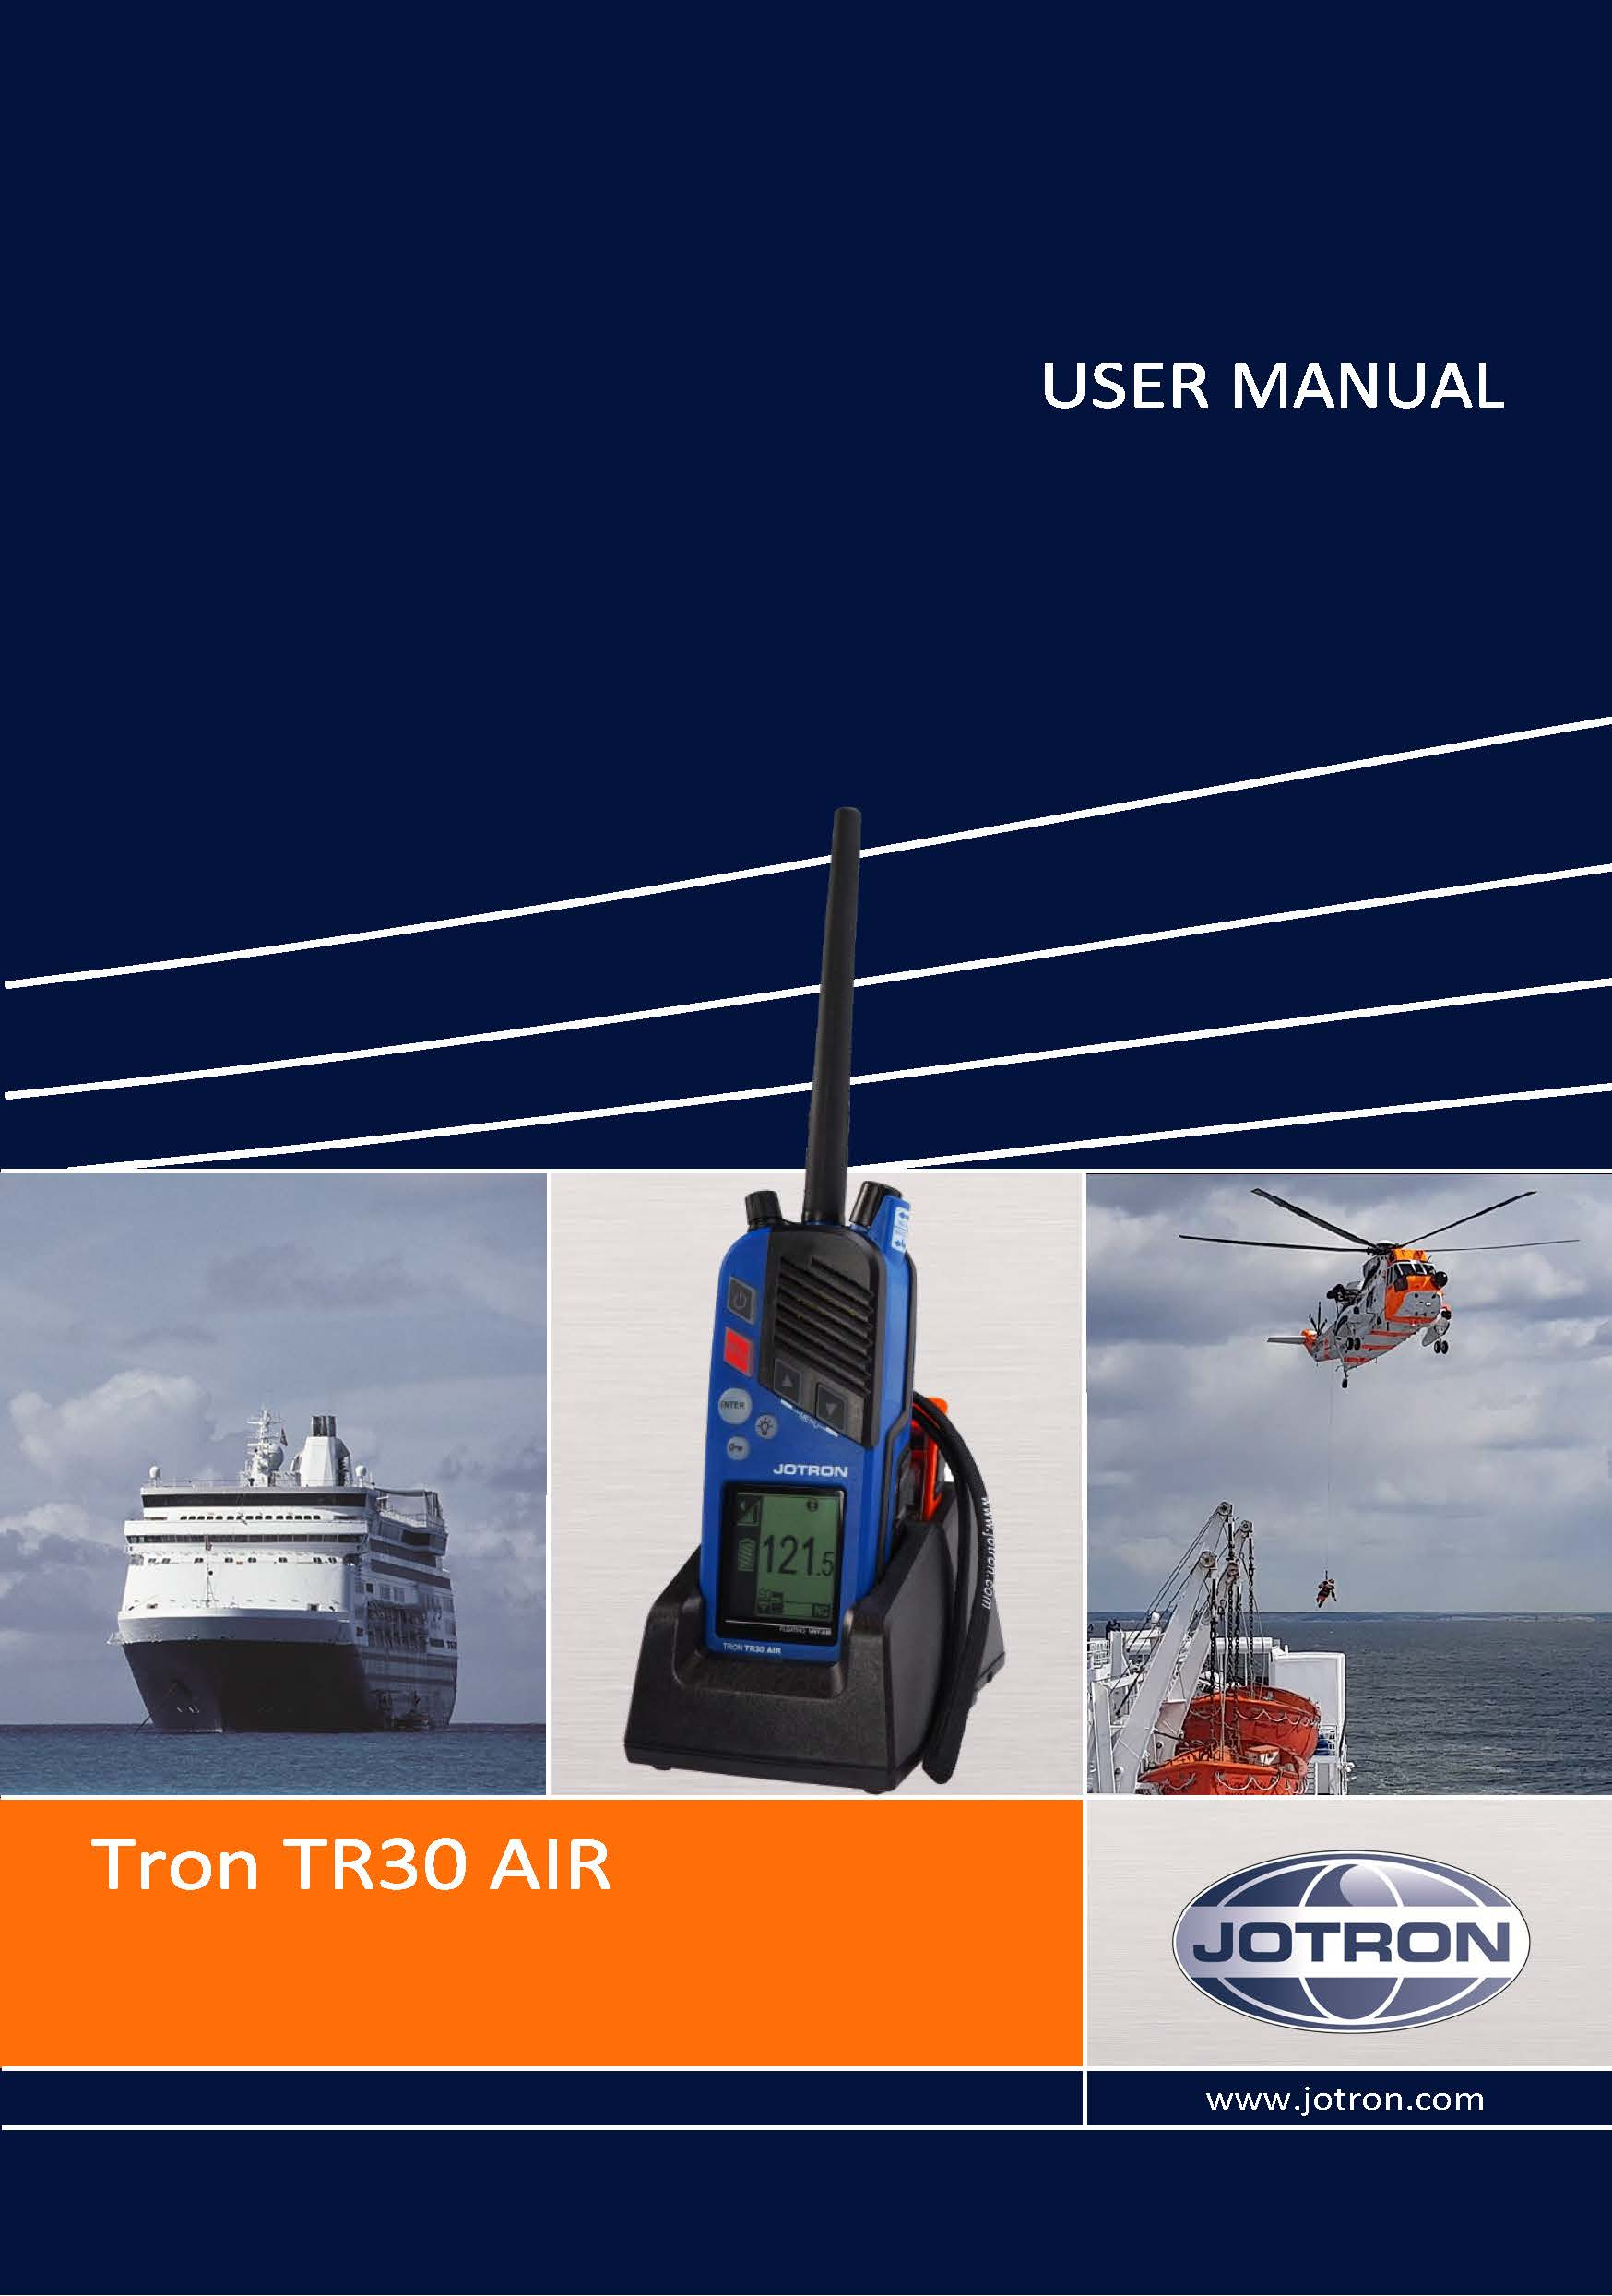 UserManual TR30 frontpage